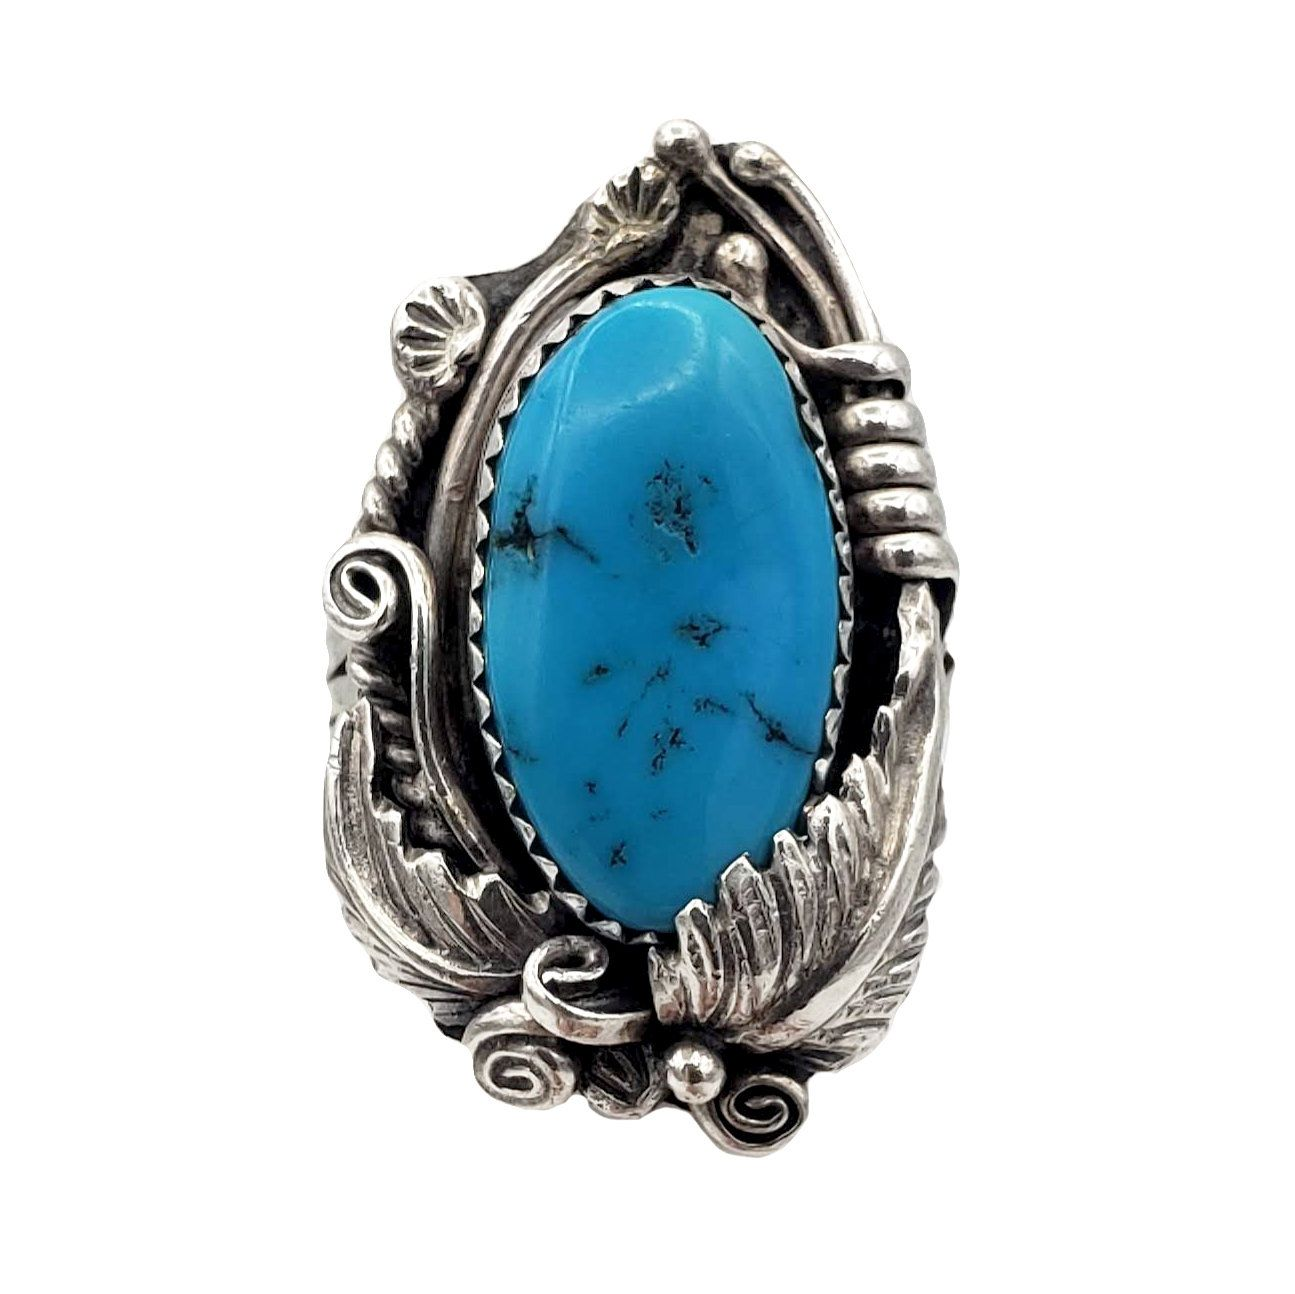 Classic Twisted Wire 925 Sterling Silver and Turquoise Ring for Women,Silver Hand Crafted Fashion Ring,Dainty silver and turquoise ring